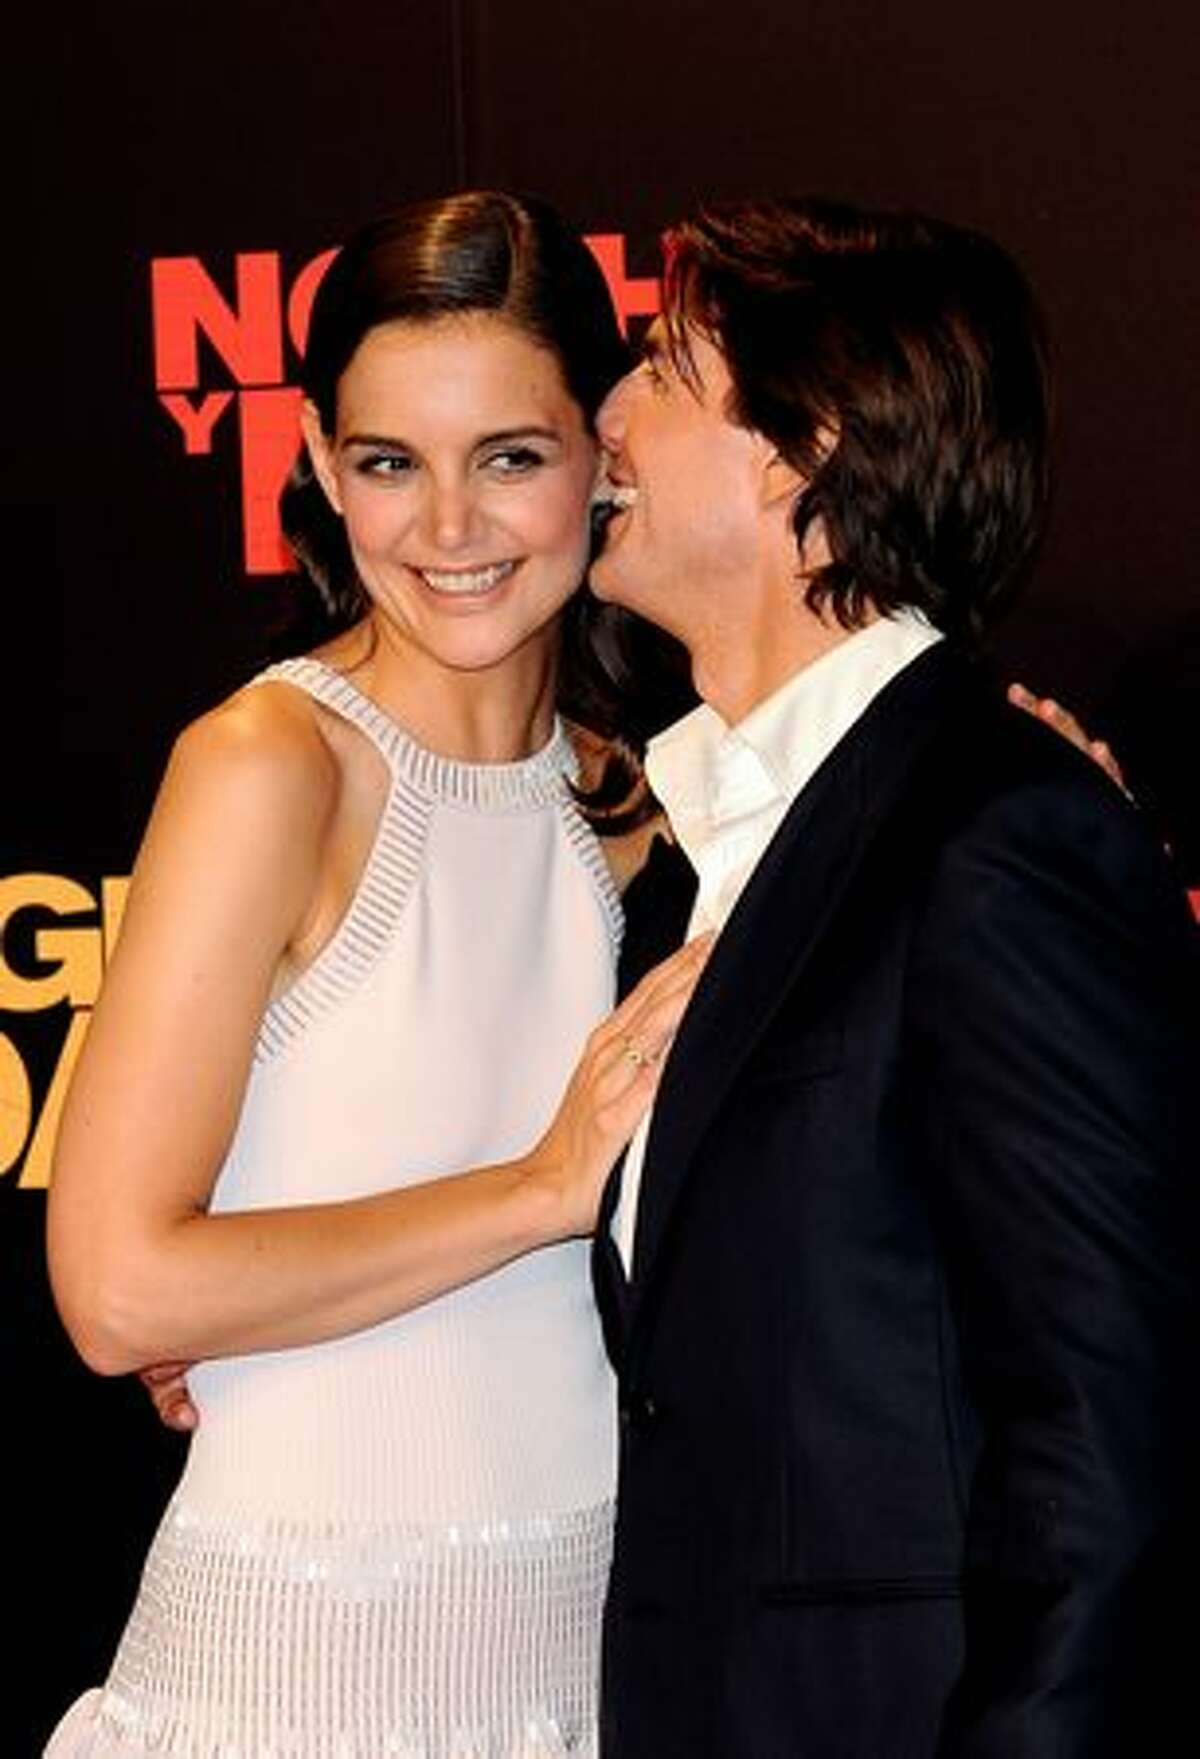 Tom Cruise and wife Katie Holmes attend